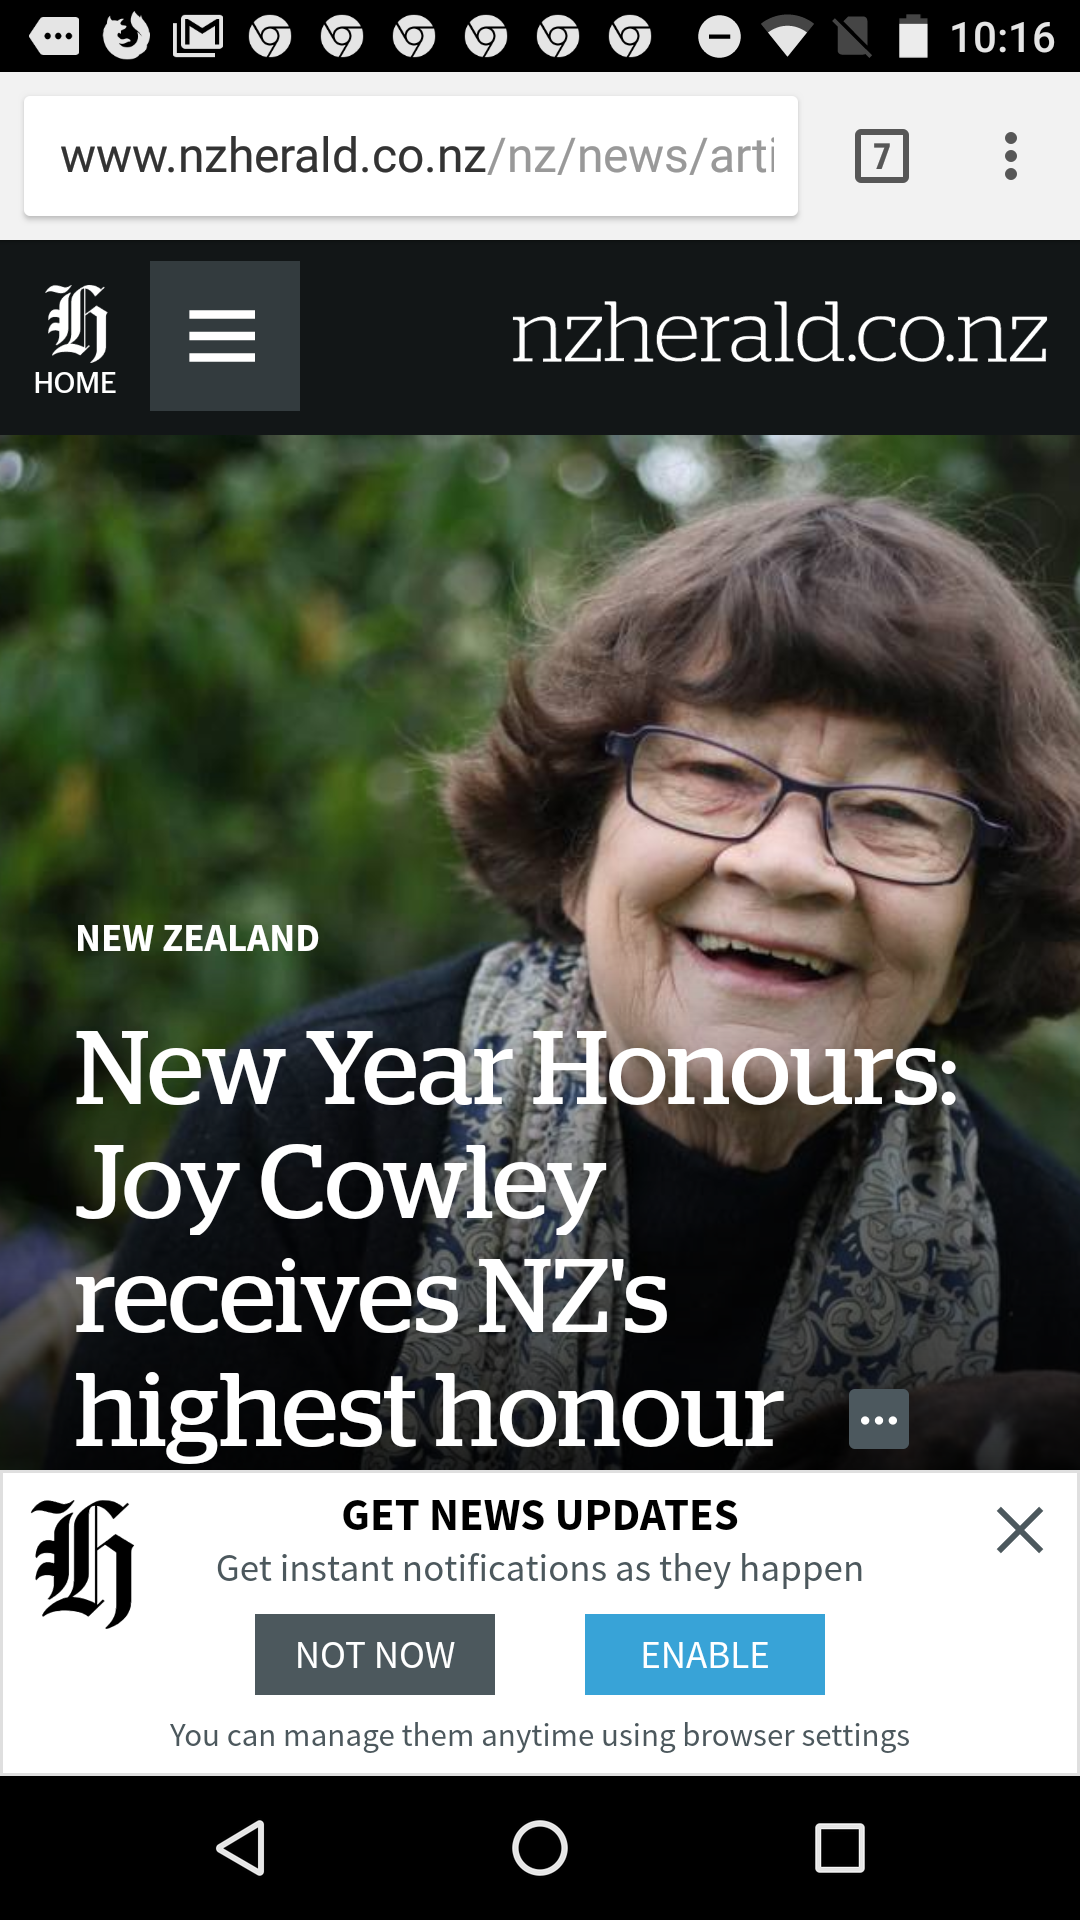 nz-herald-web-push-notifications-opt-in-on-mobile